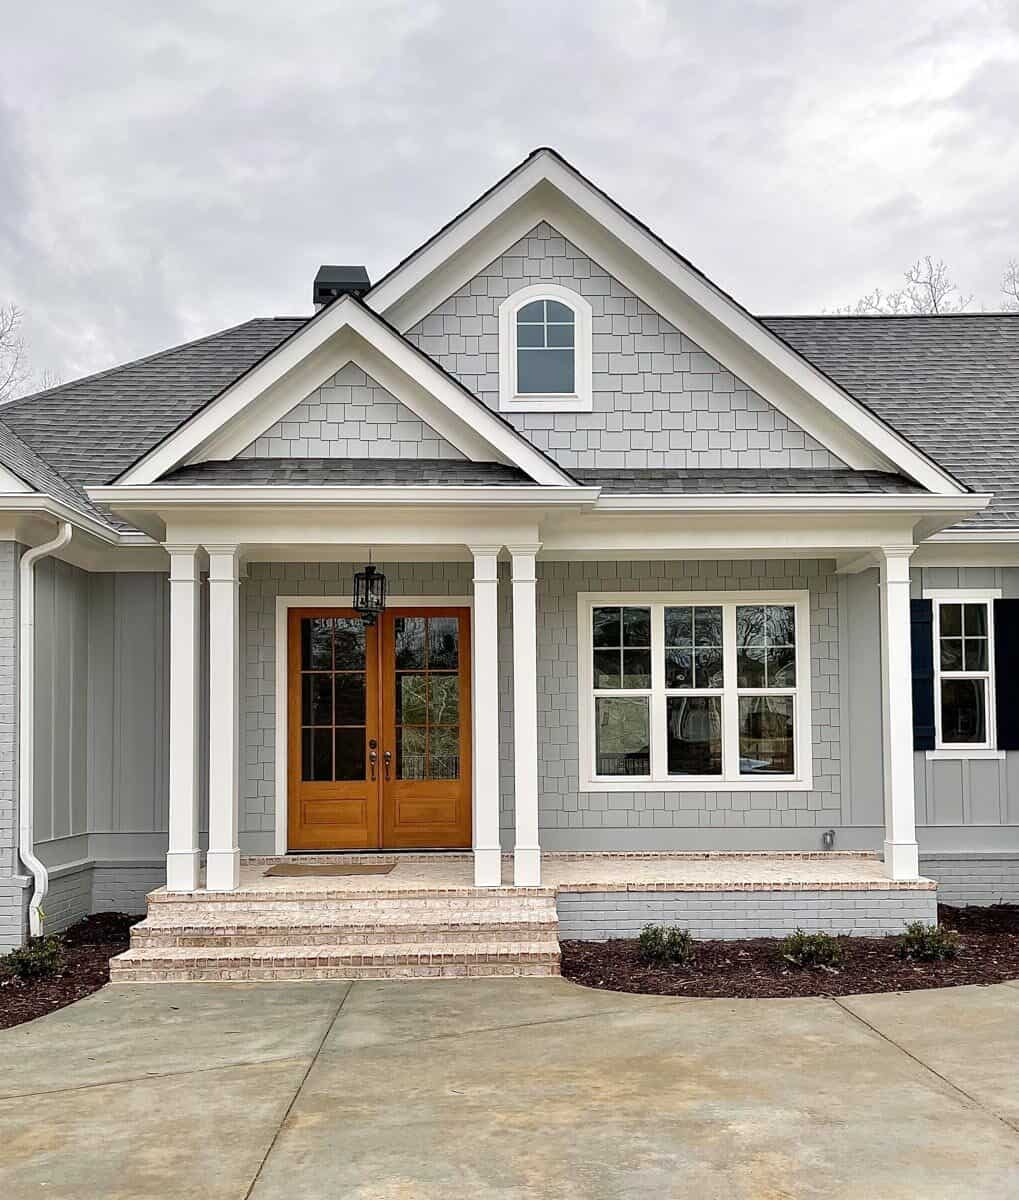 Entry porch with a brick stoop, double columns, and a wooden french door.